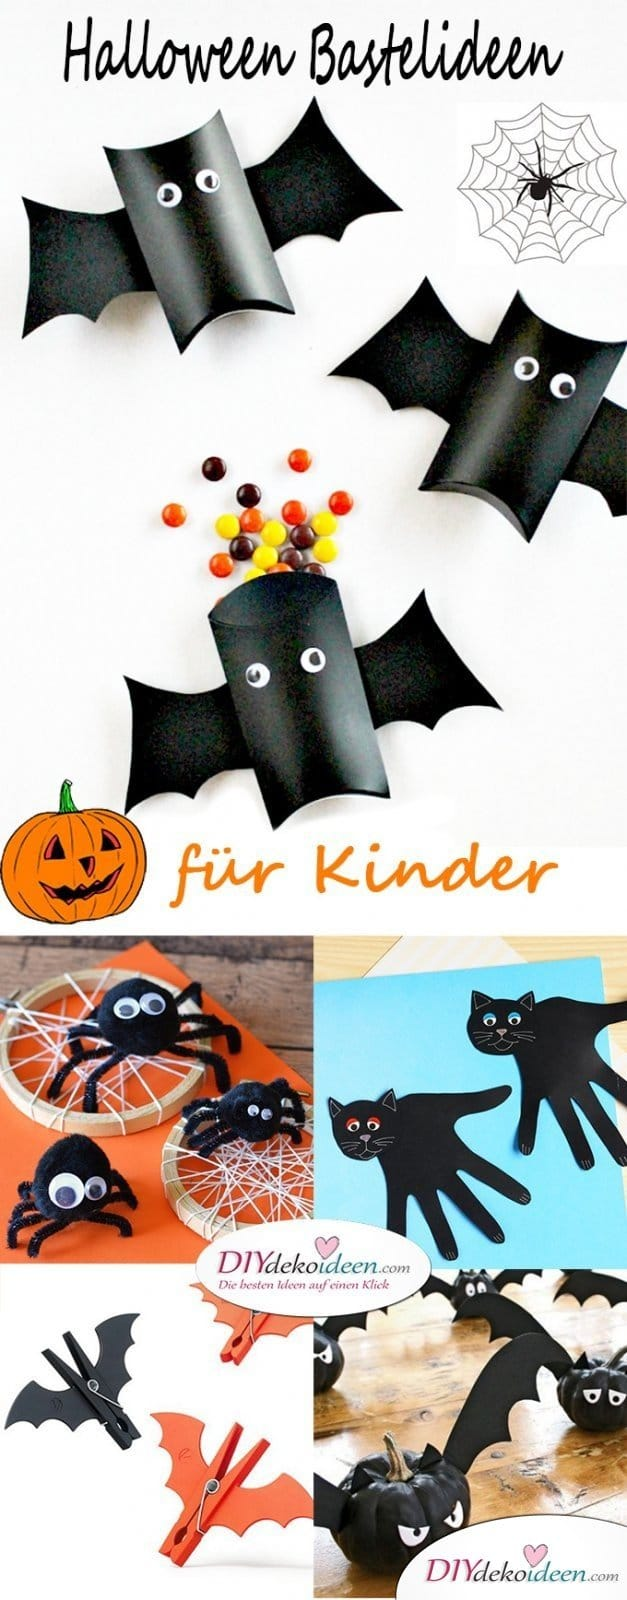 Halloween Bastelideen für Kinder - DIY Bastelideen for the whole family